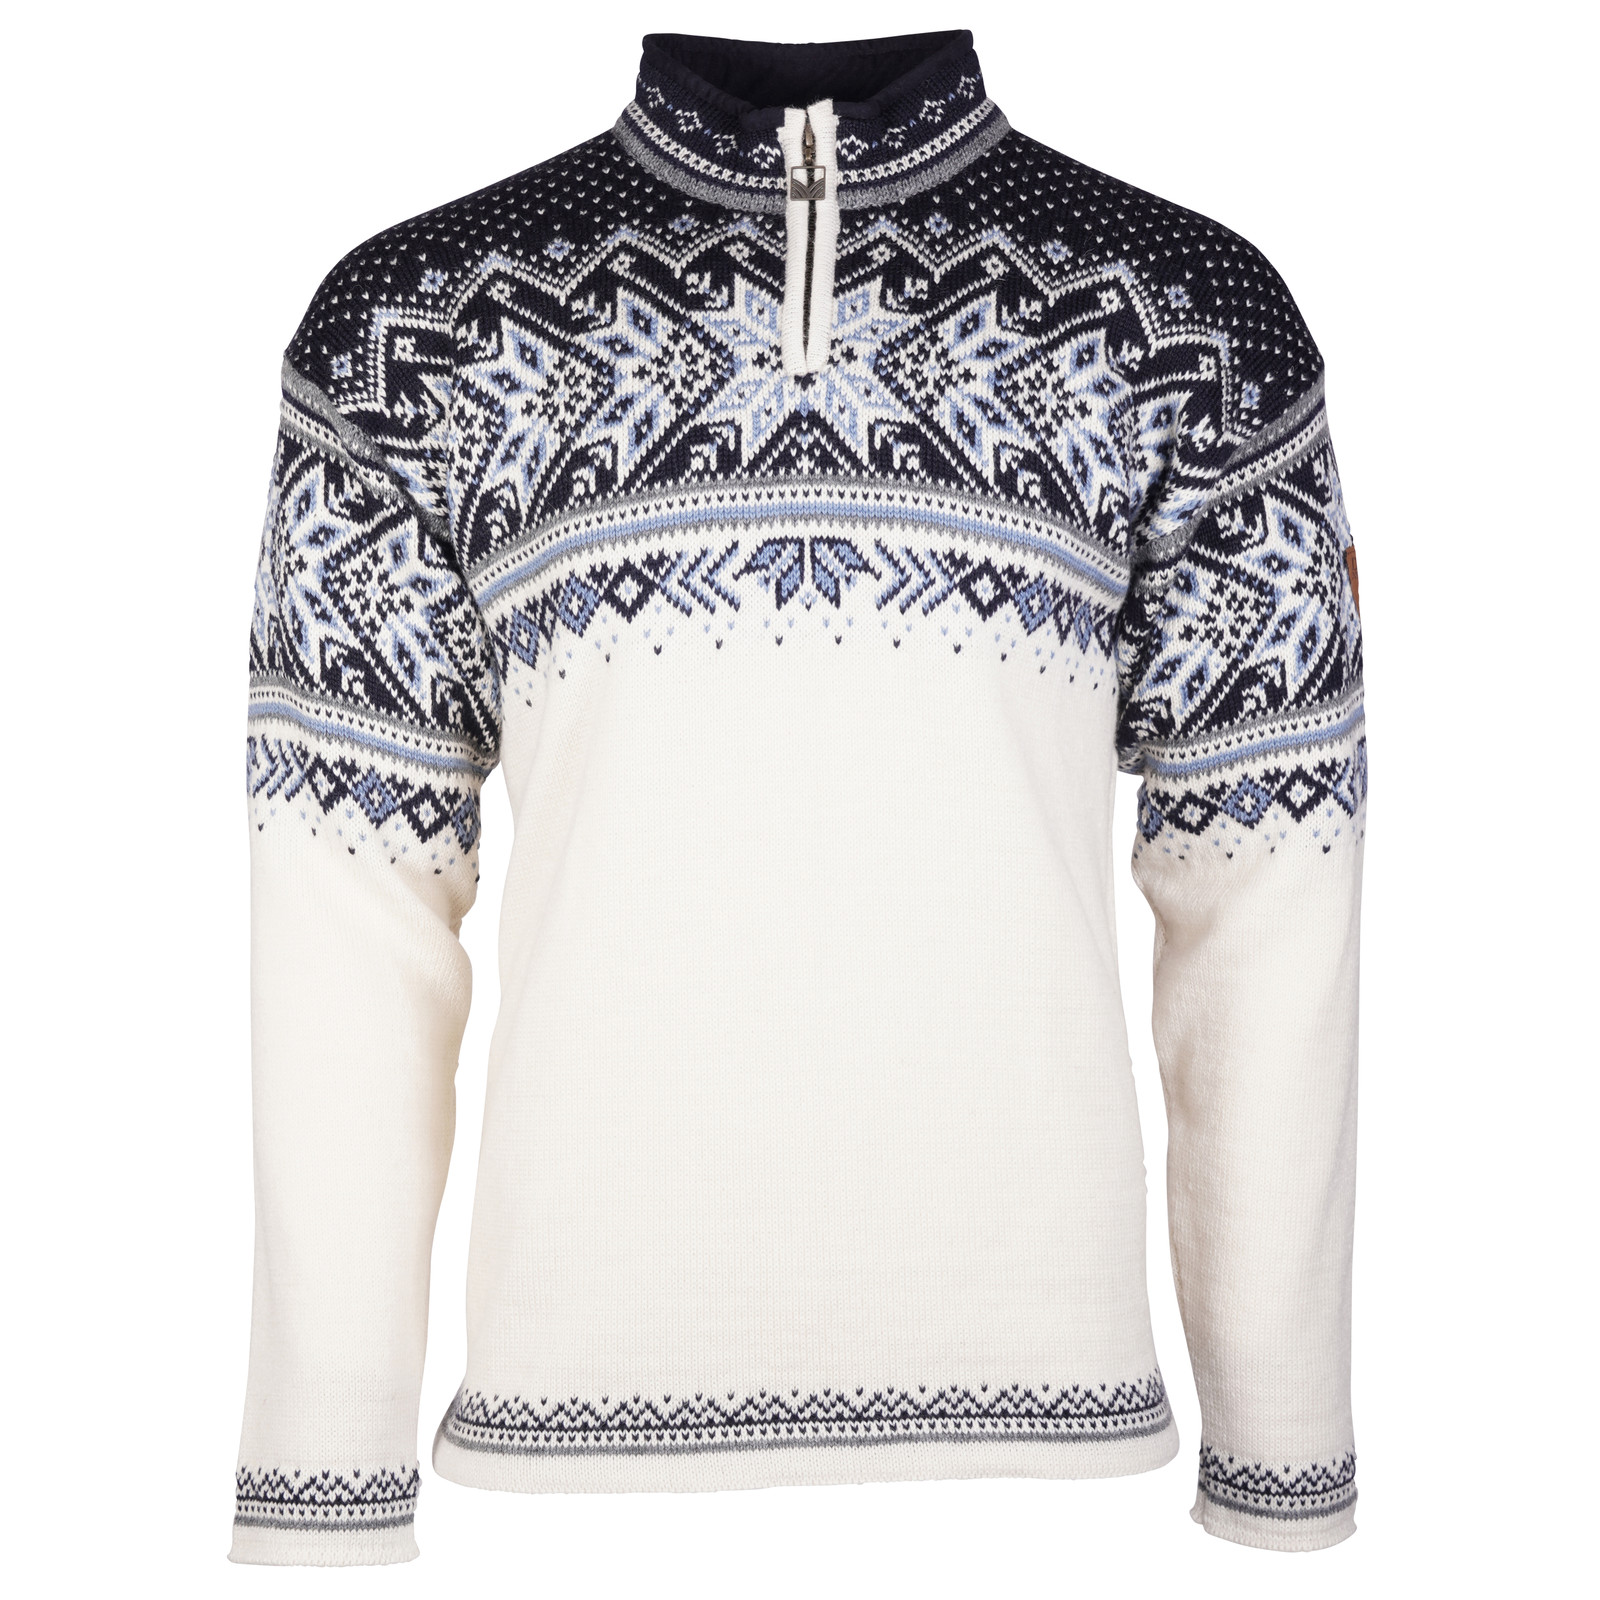 Dale of Norway Vail Pullover - Off White/Smoke/Midnight Navy/Navy/Blue Shadow, 90331-A